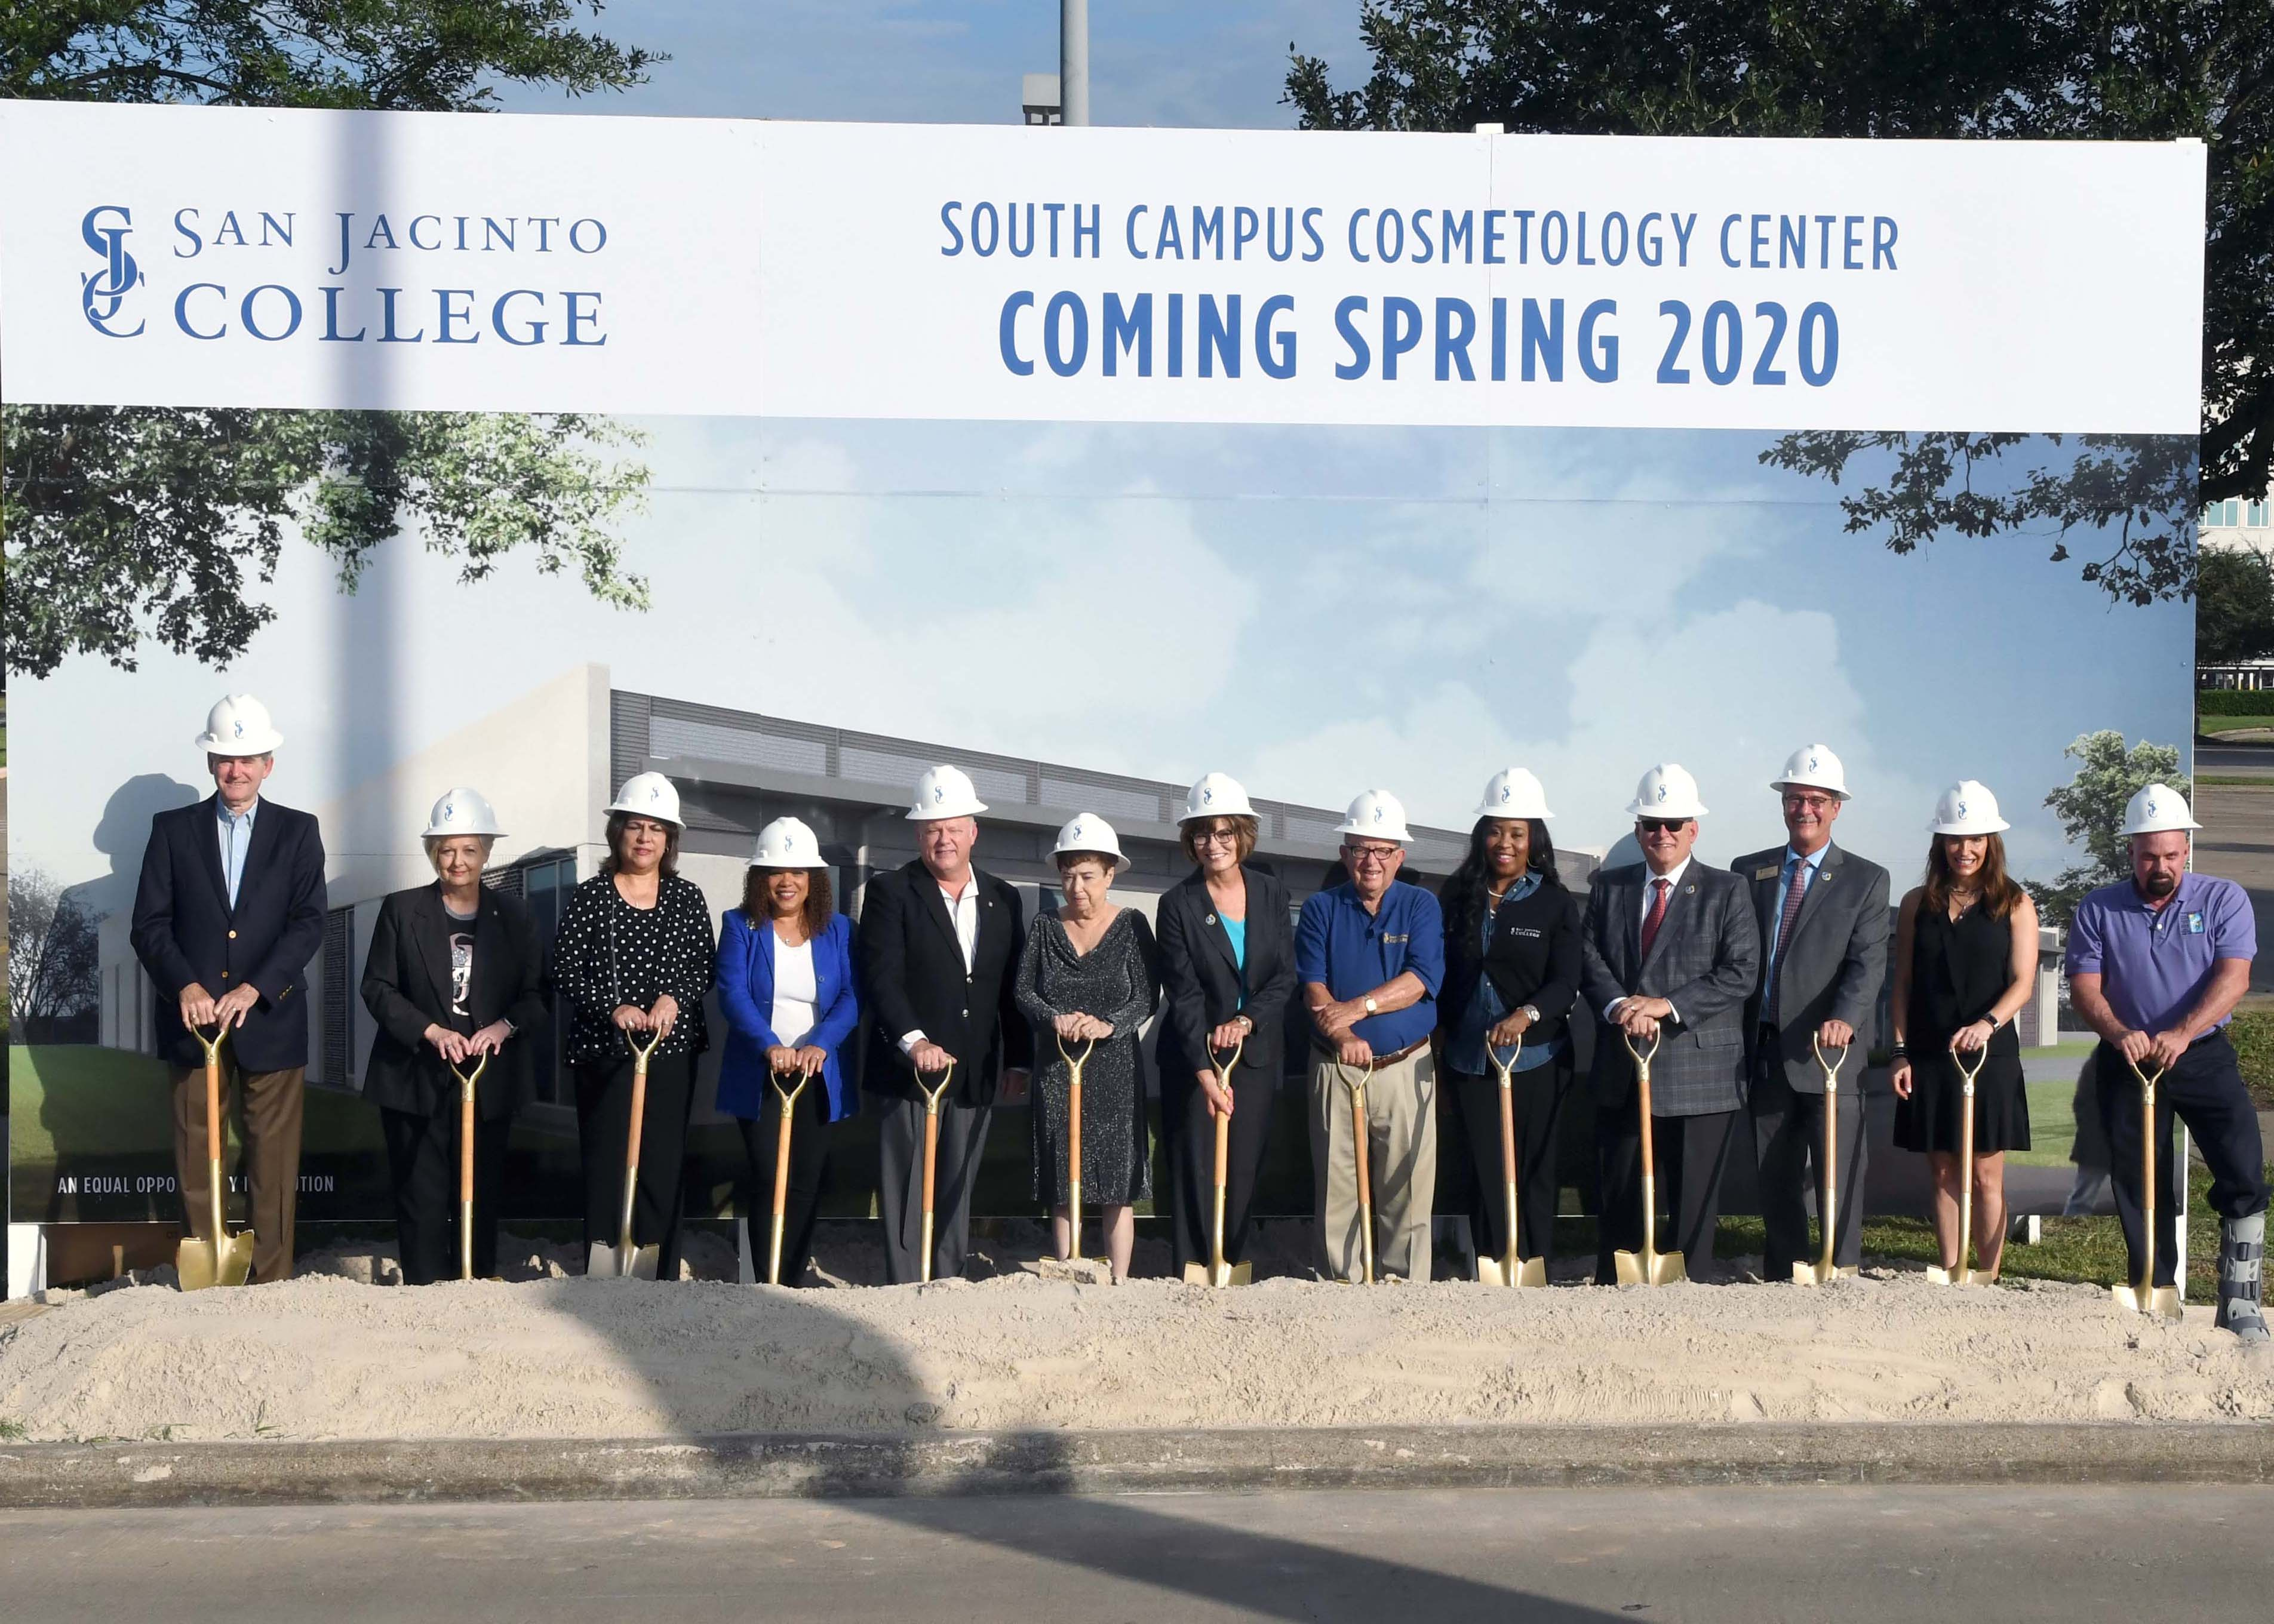 San Jacinto College breaks ground on state-of-the-art Cosmetology Center